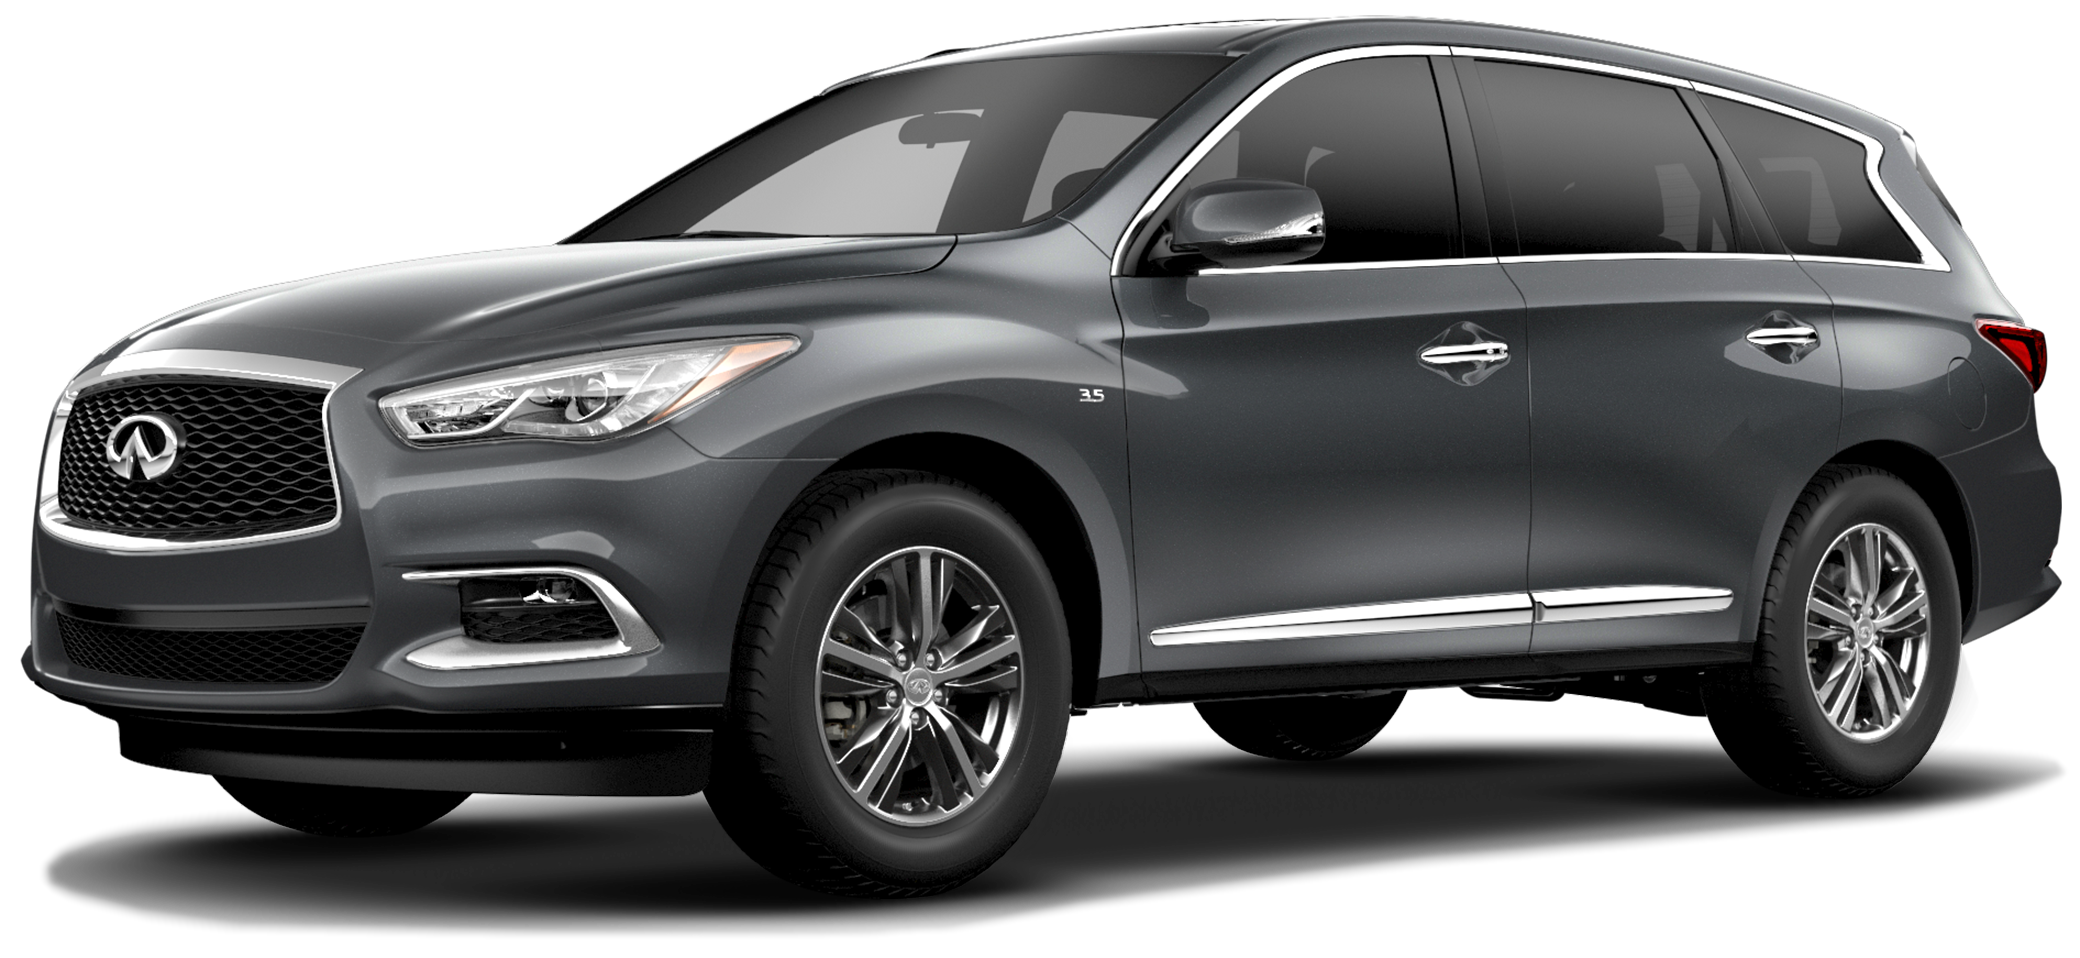 2020 infiniti qx60 incentives, specials & offers in